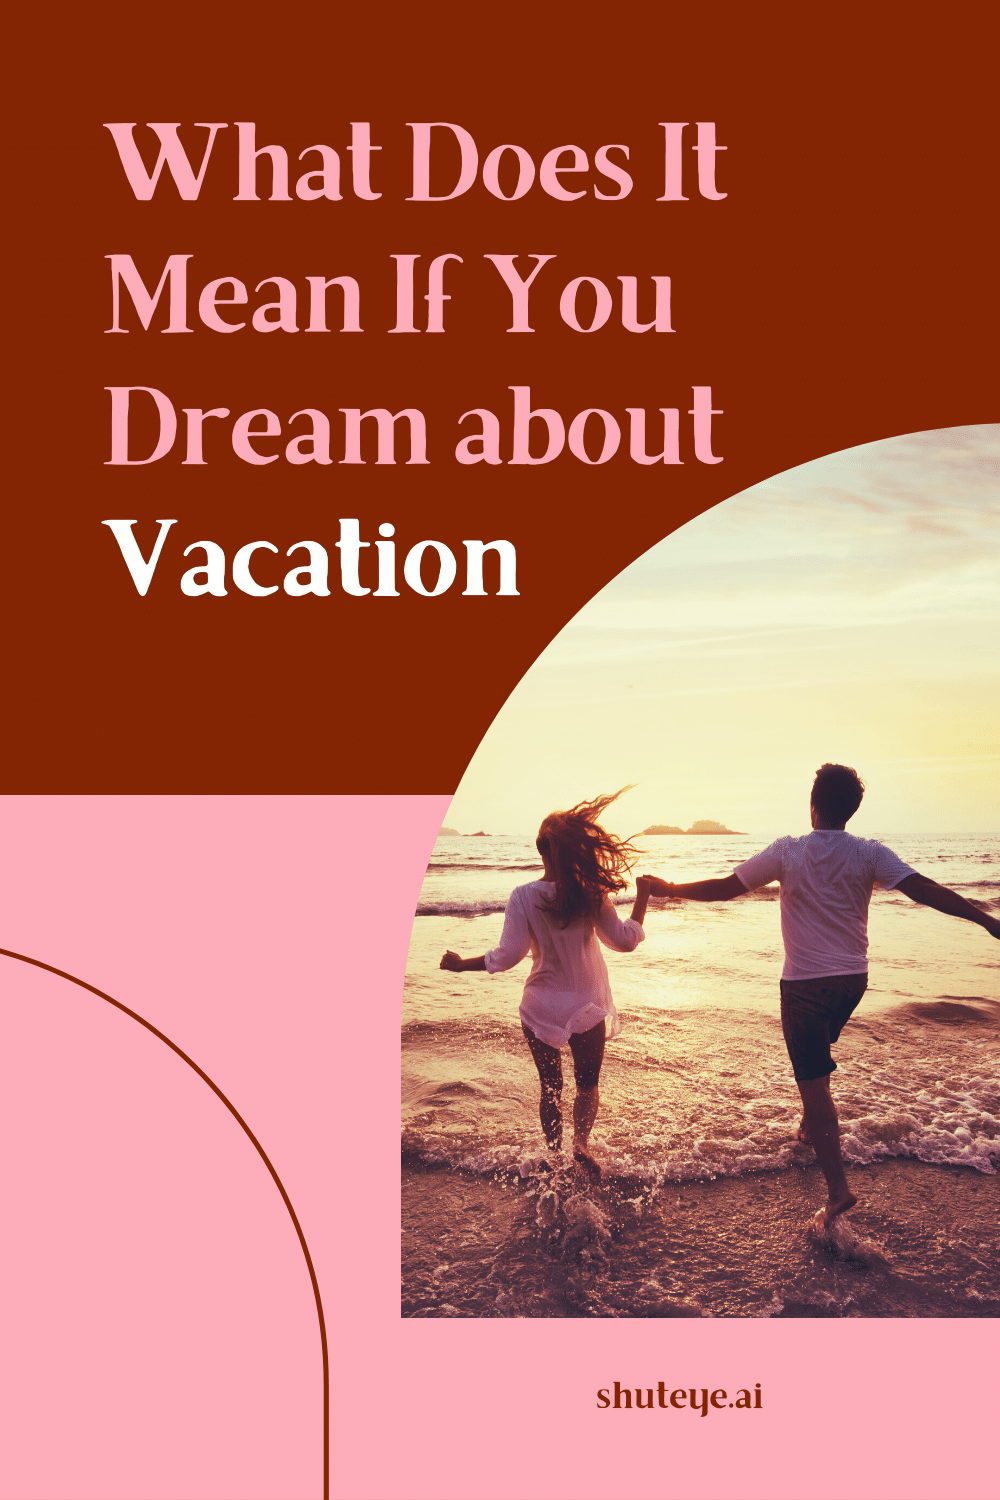 What Does It Mean When You Dream about Vacation